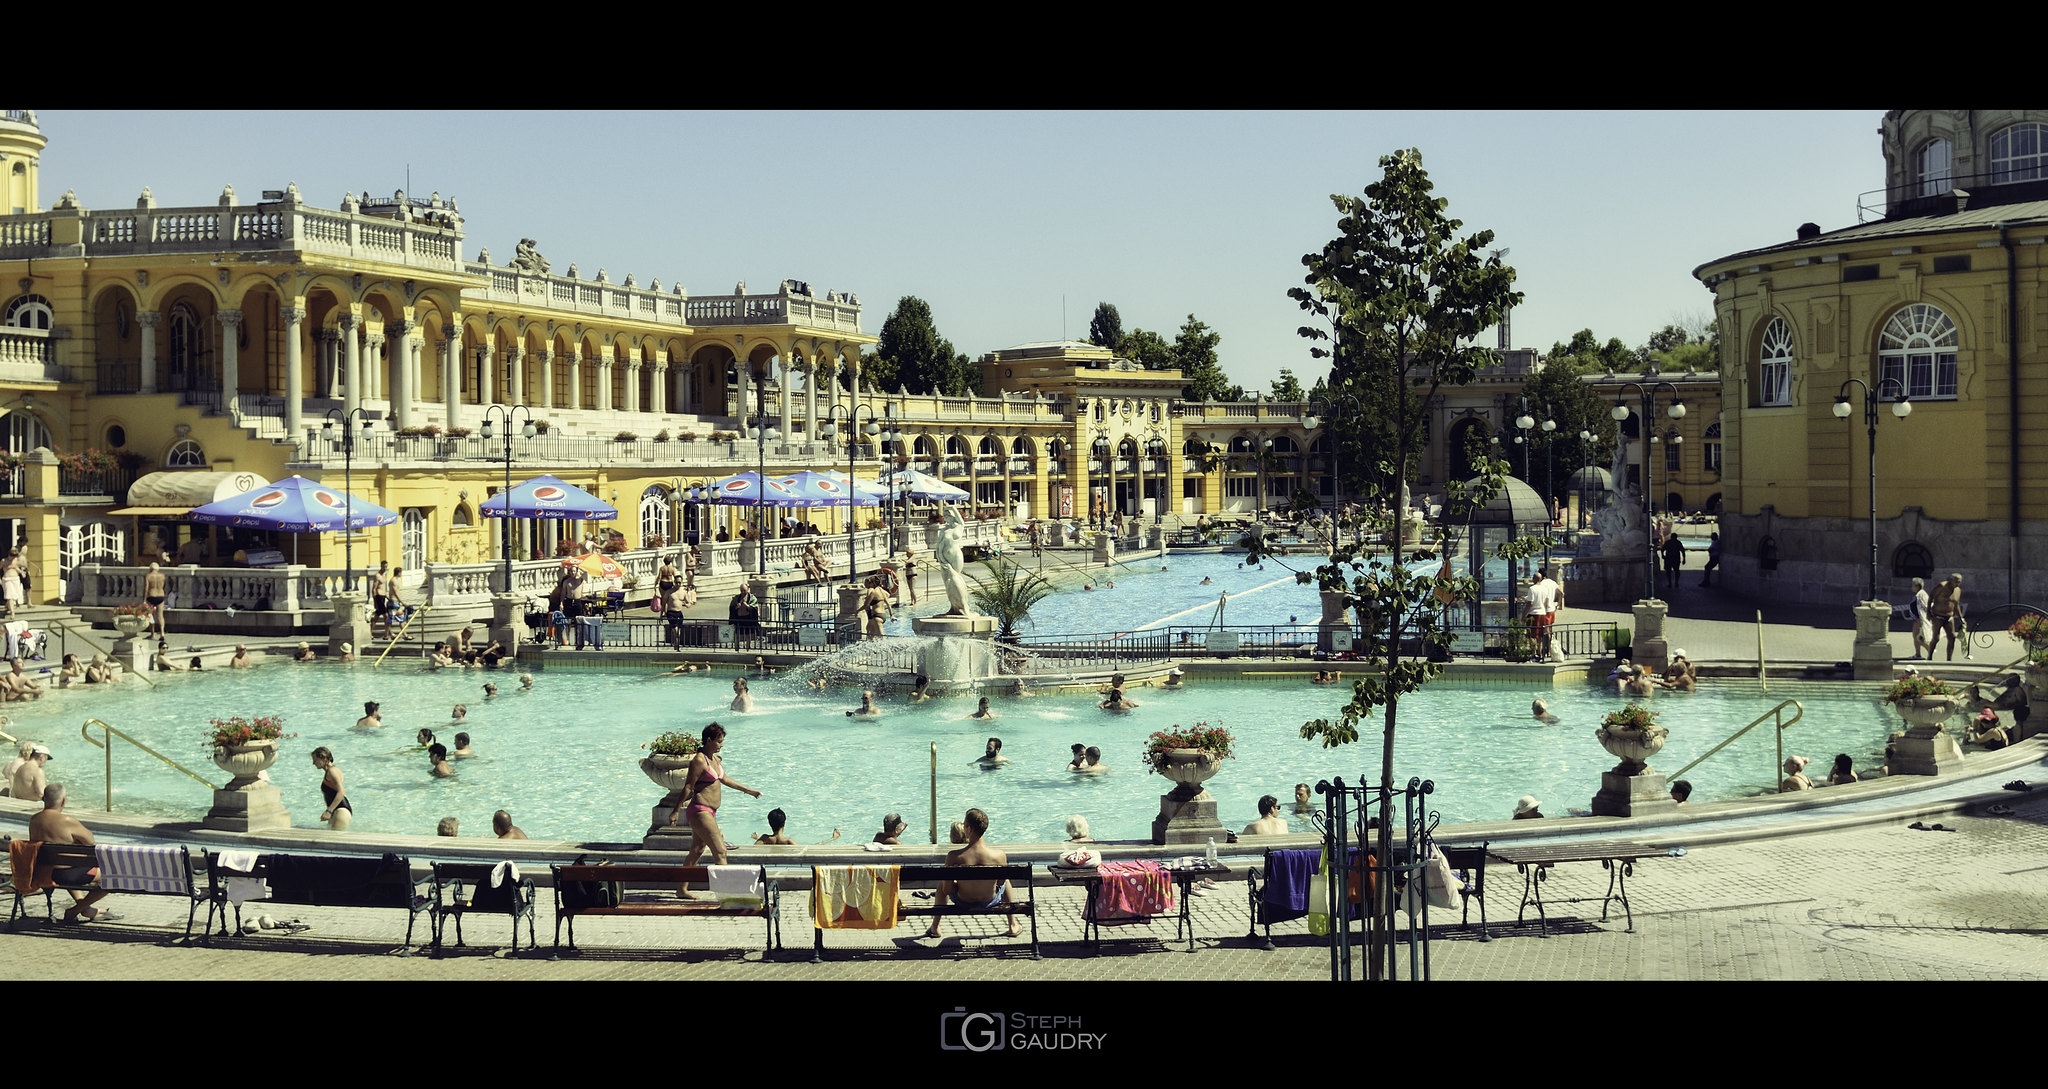 Széchenyi Thermal Bath and Swimming Pool [Click to start slideshow]